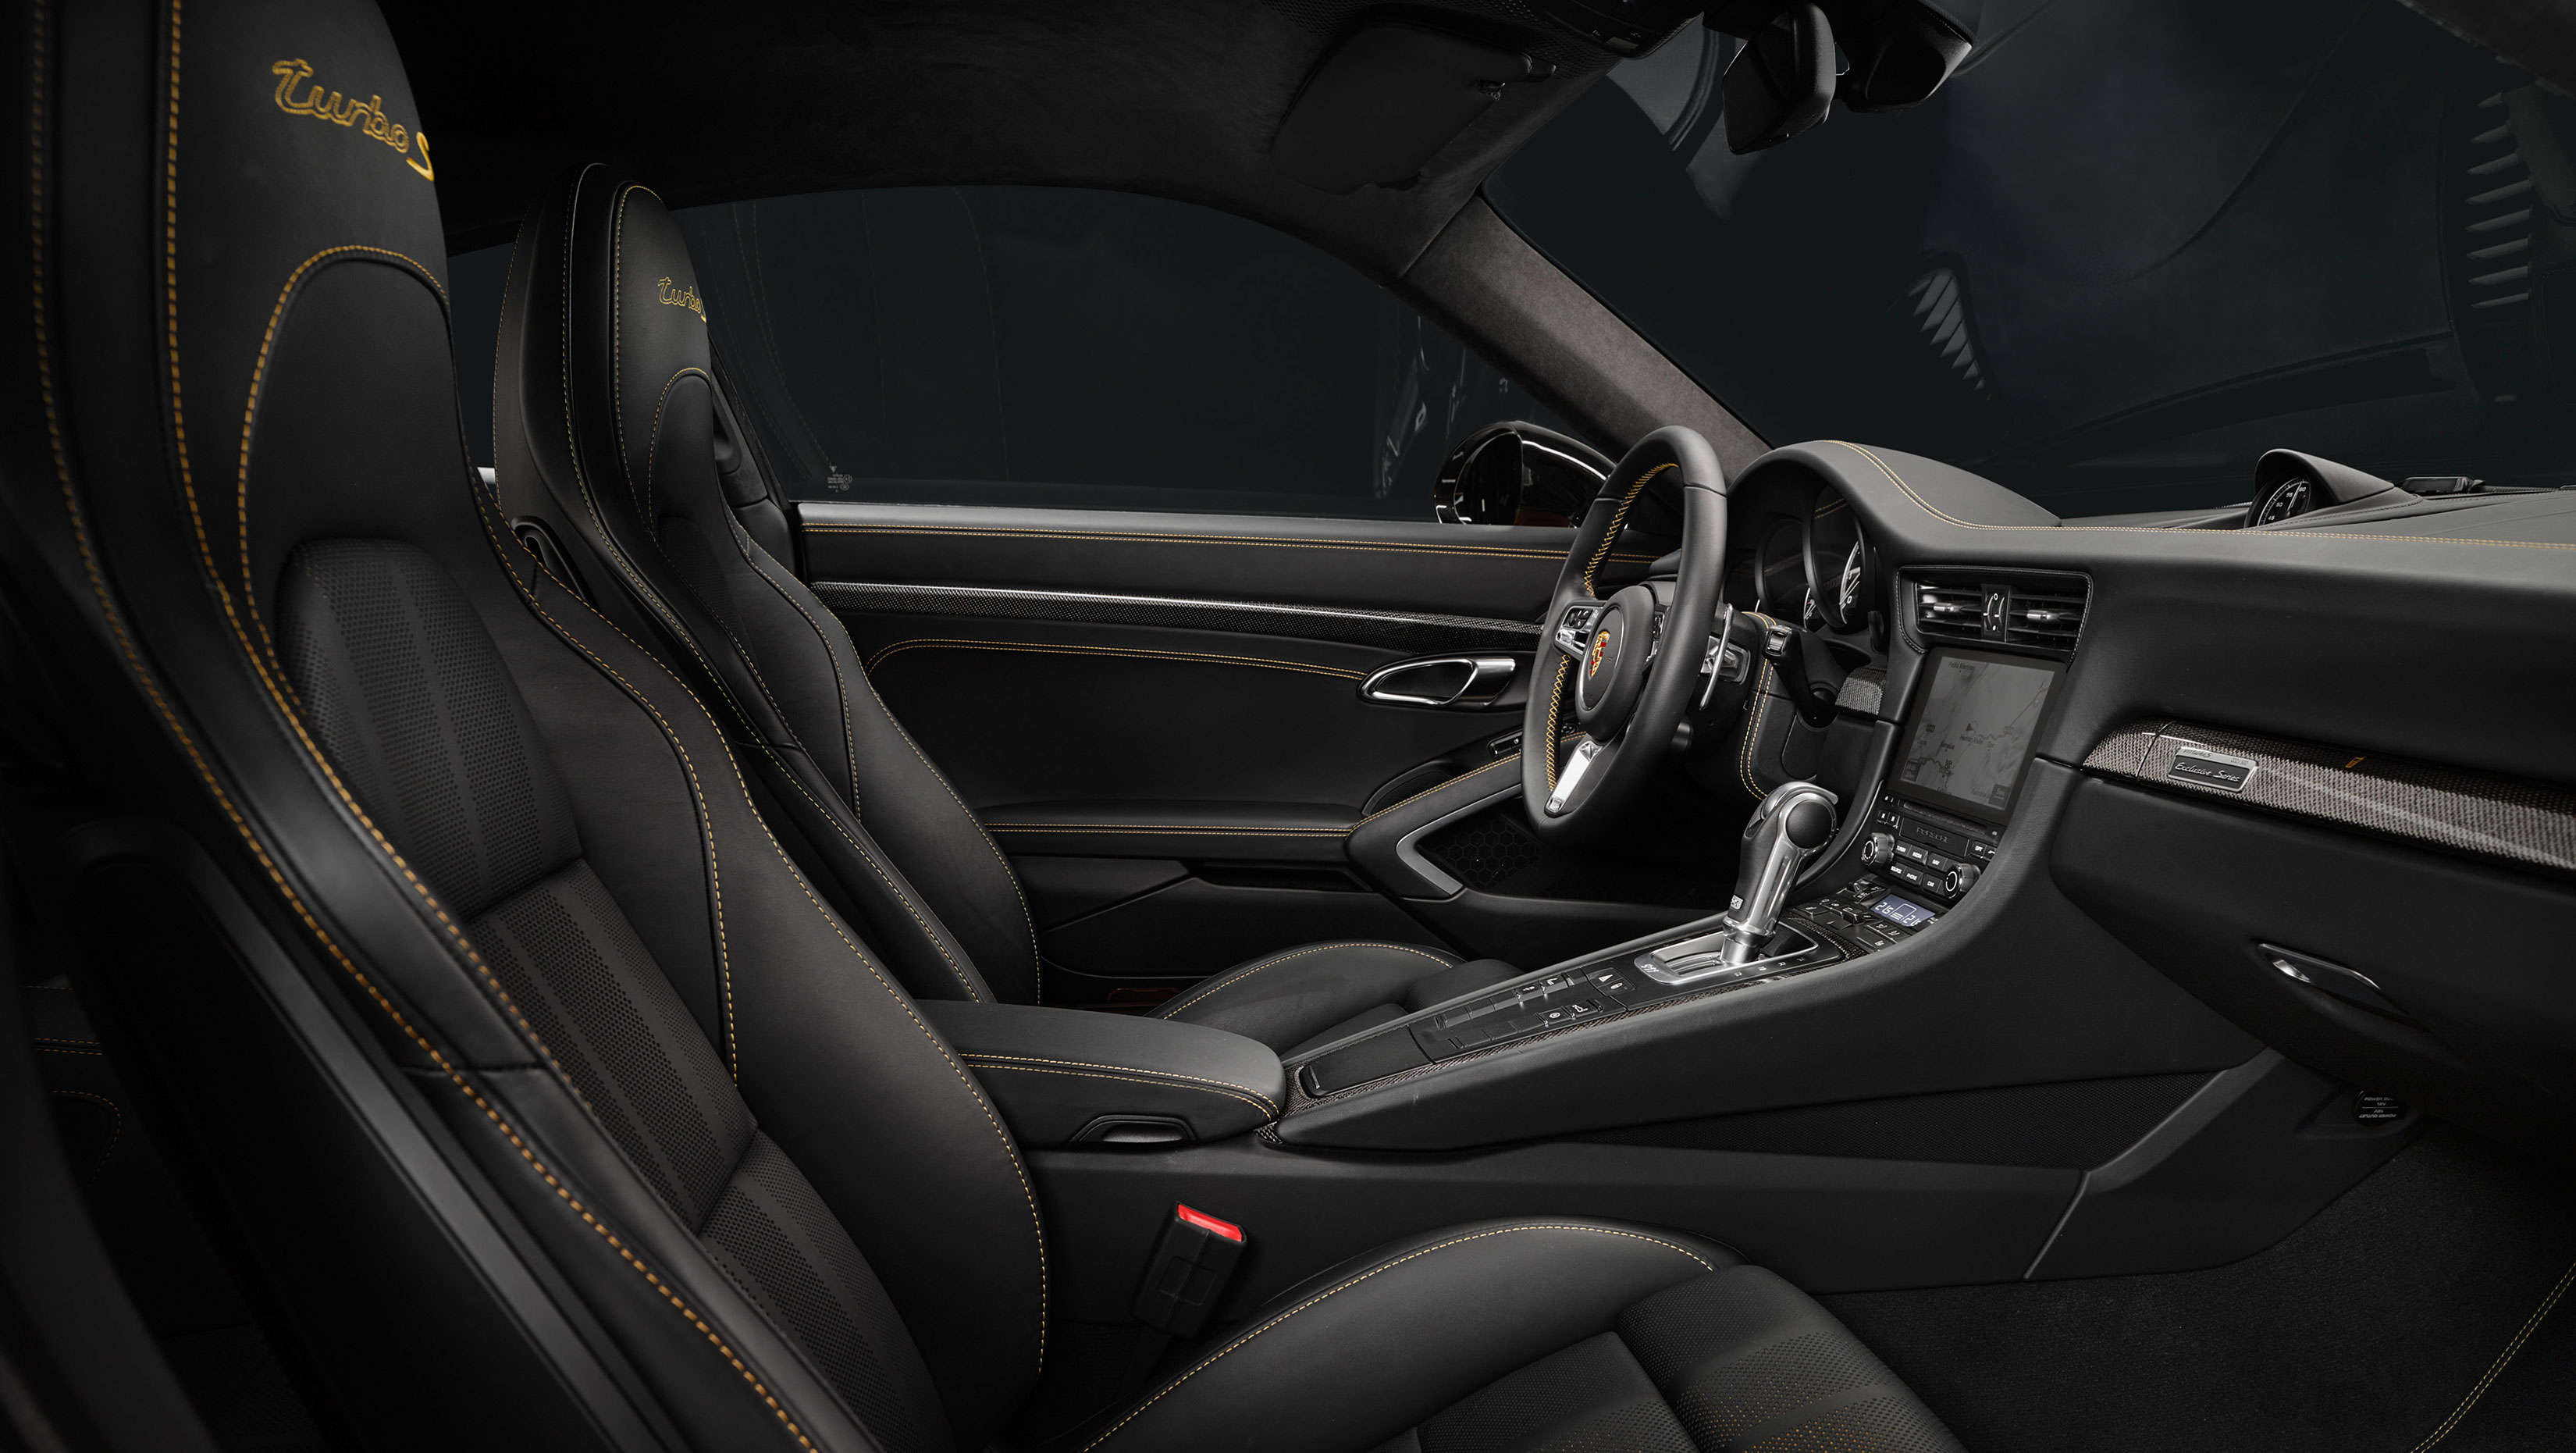 Impressions Of The New Porsche 911 Turbo S Exclusive Series Interiors Porsche 911 Turbo S Exclusive Et Auto